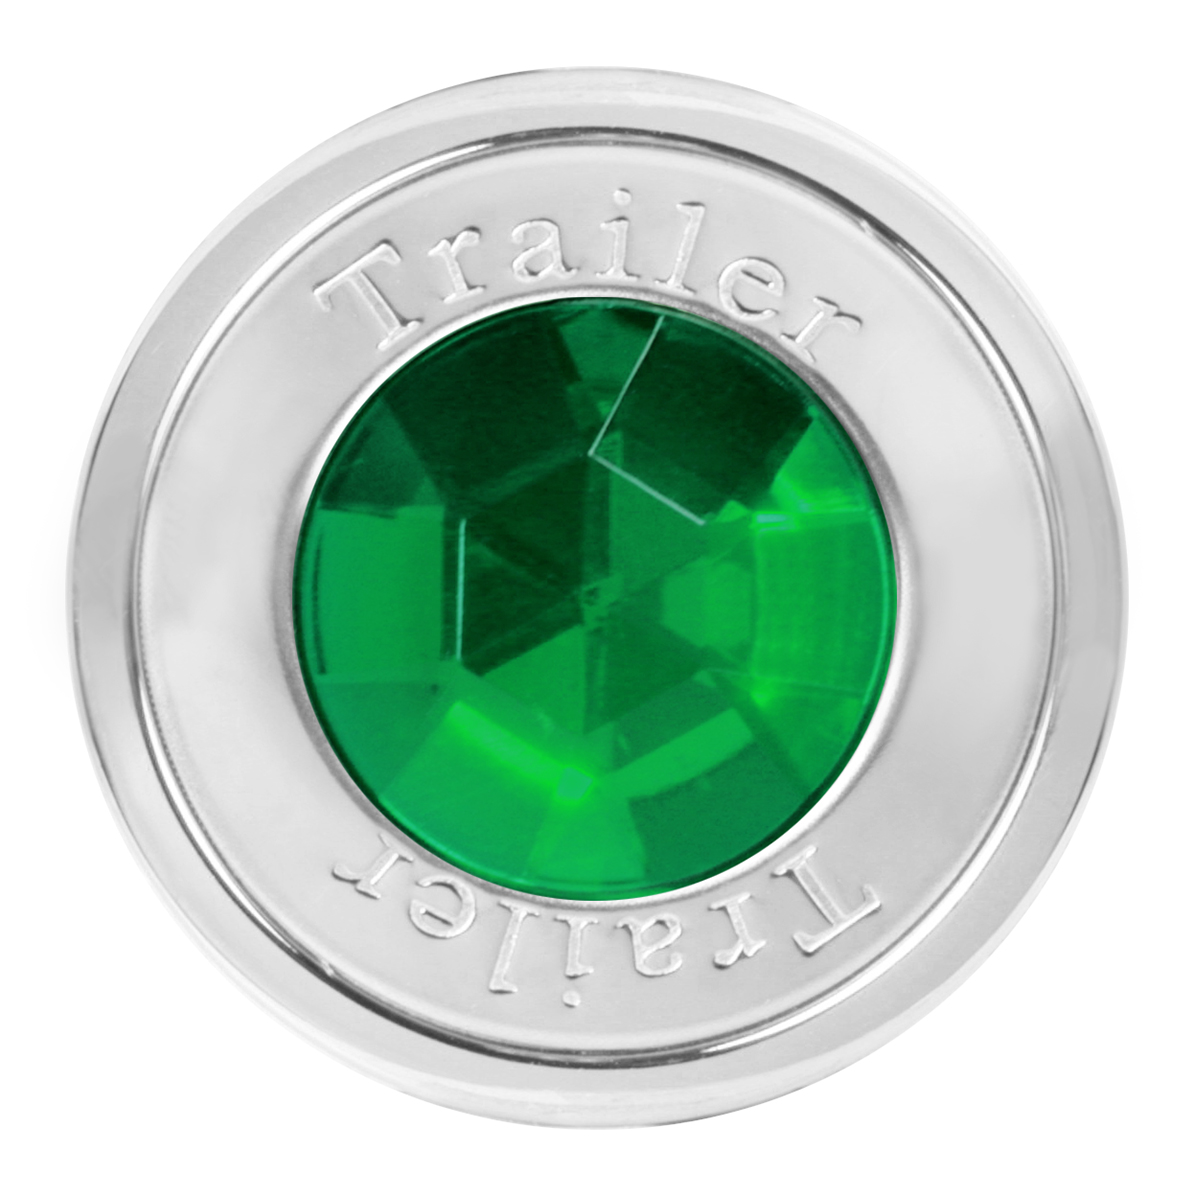 95823 Trailer Air Control Knob w/ Green Crystal